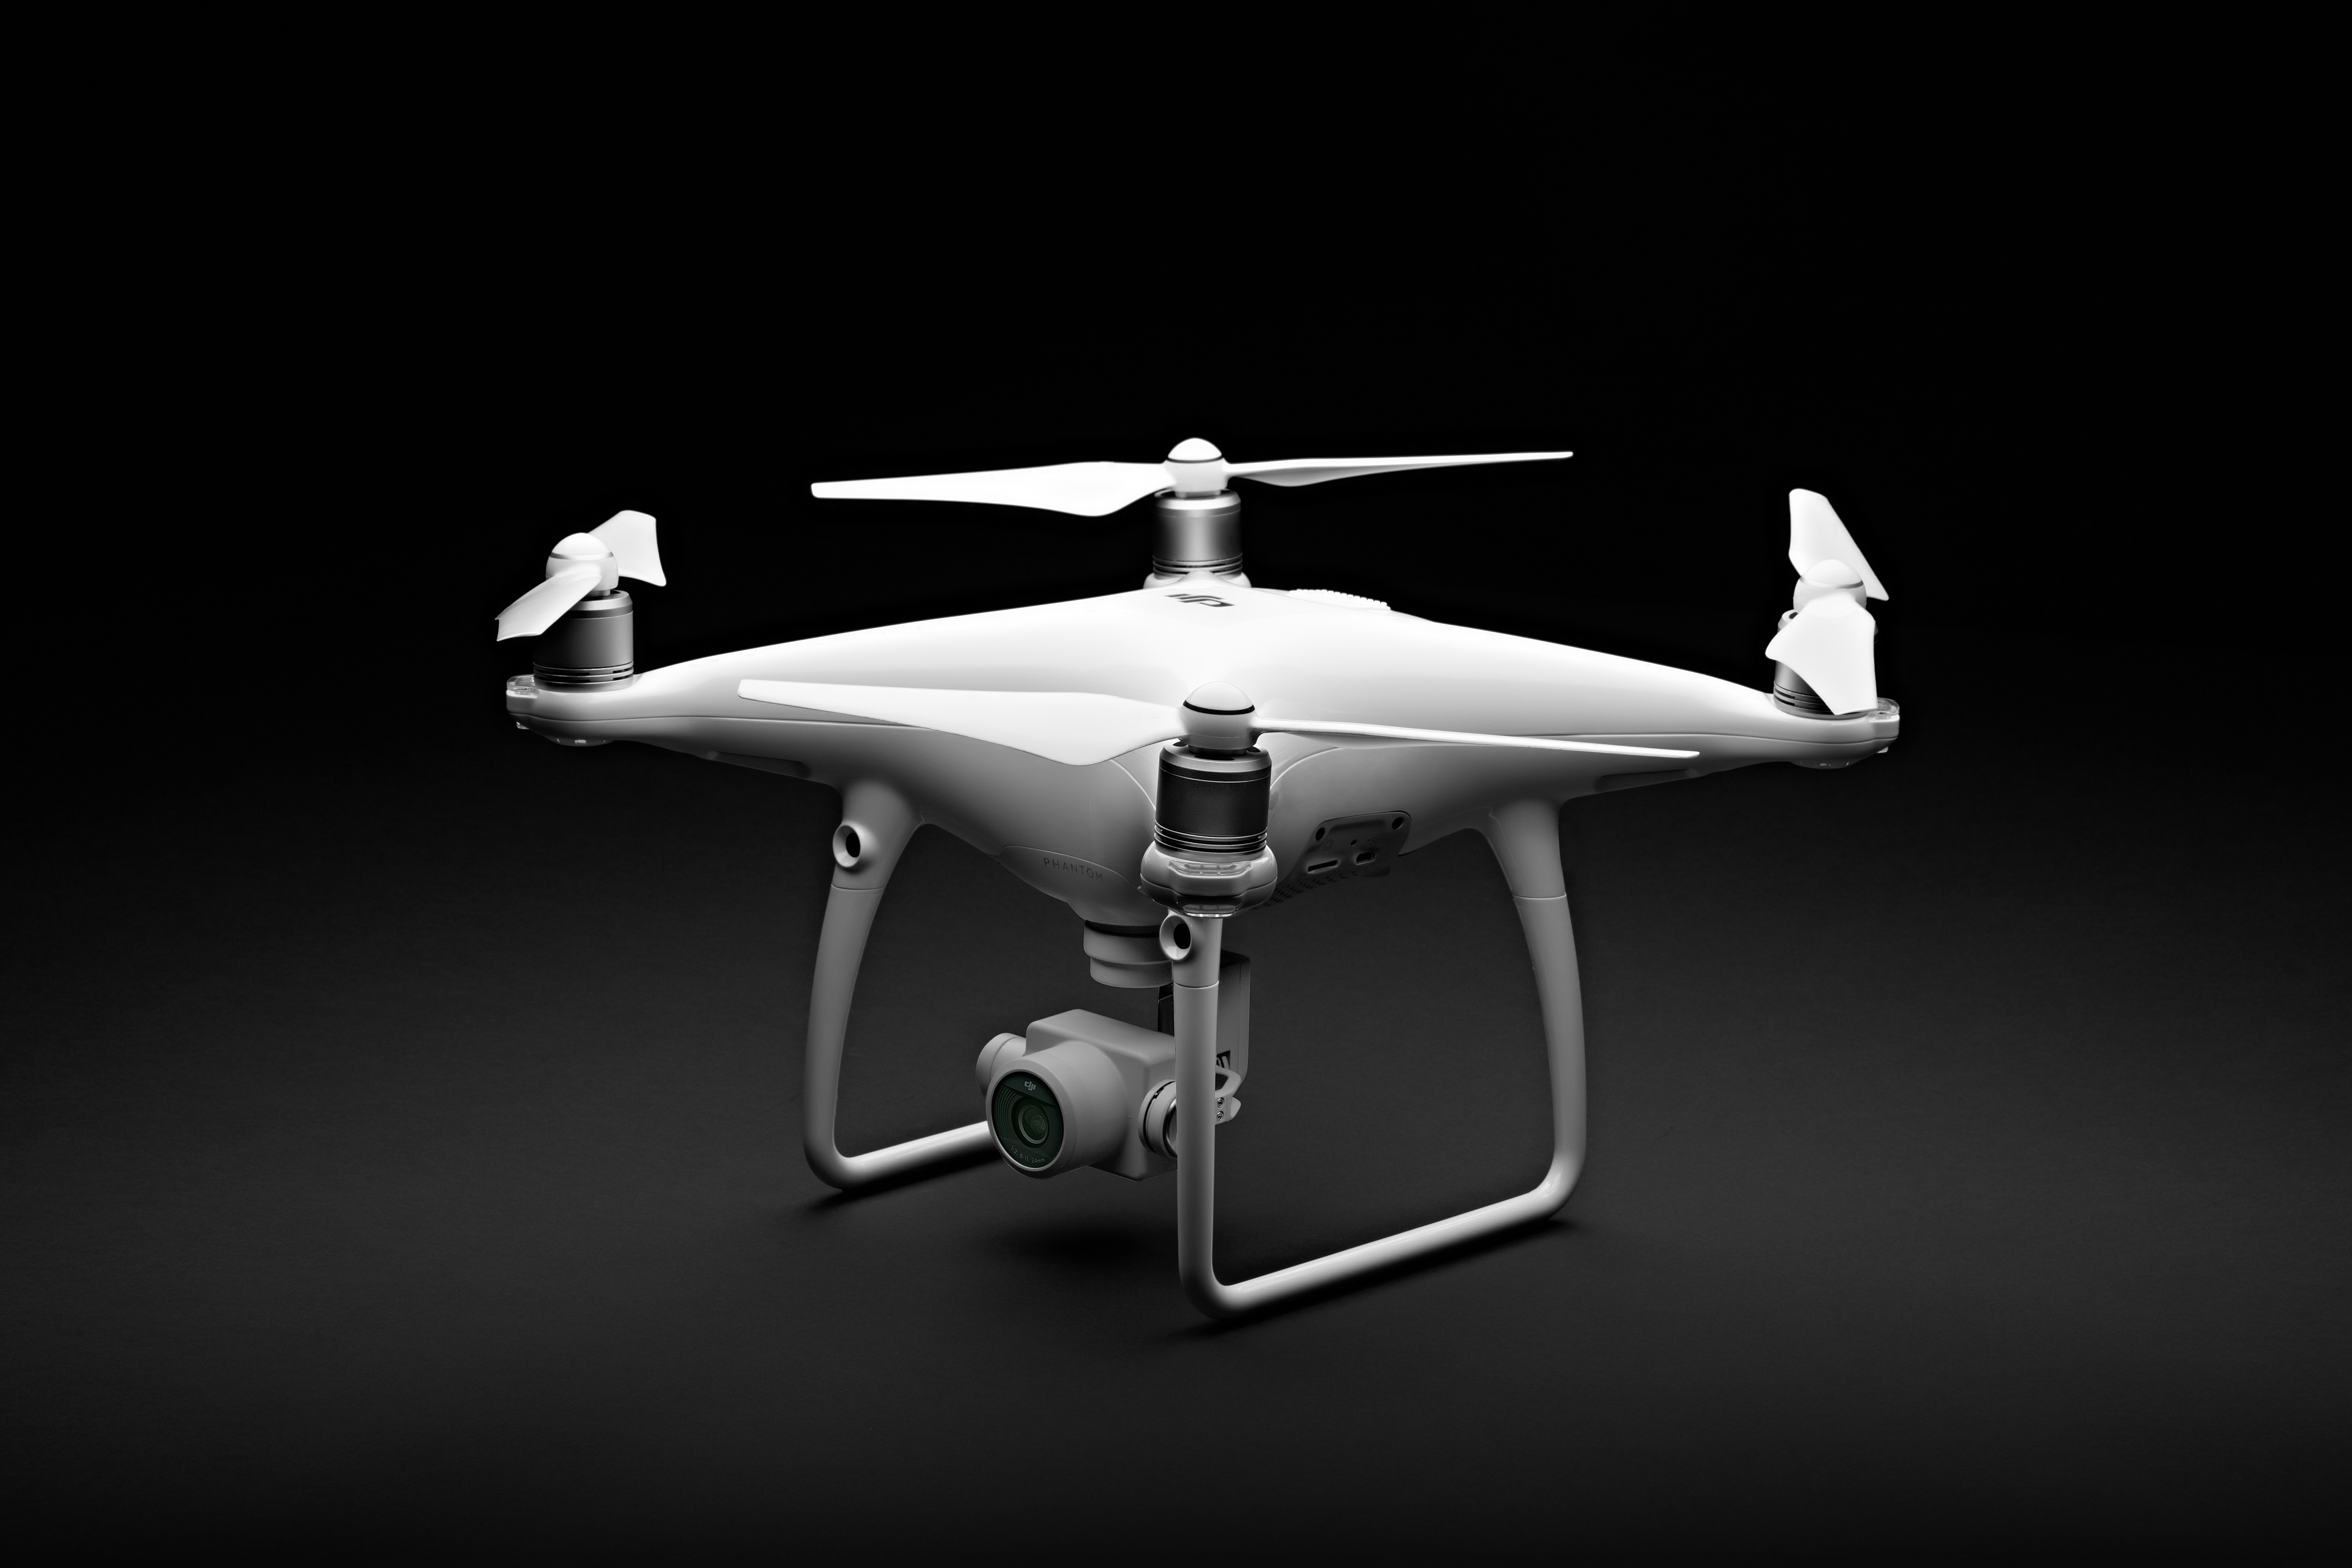 Dji Announces A New More Affordable Phantom 4 Drone The